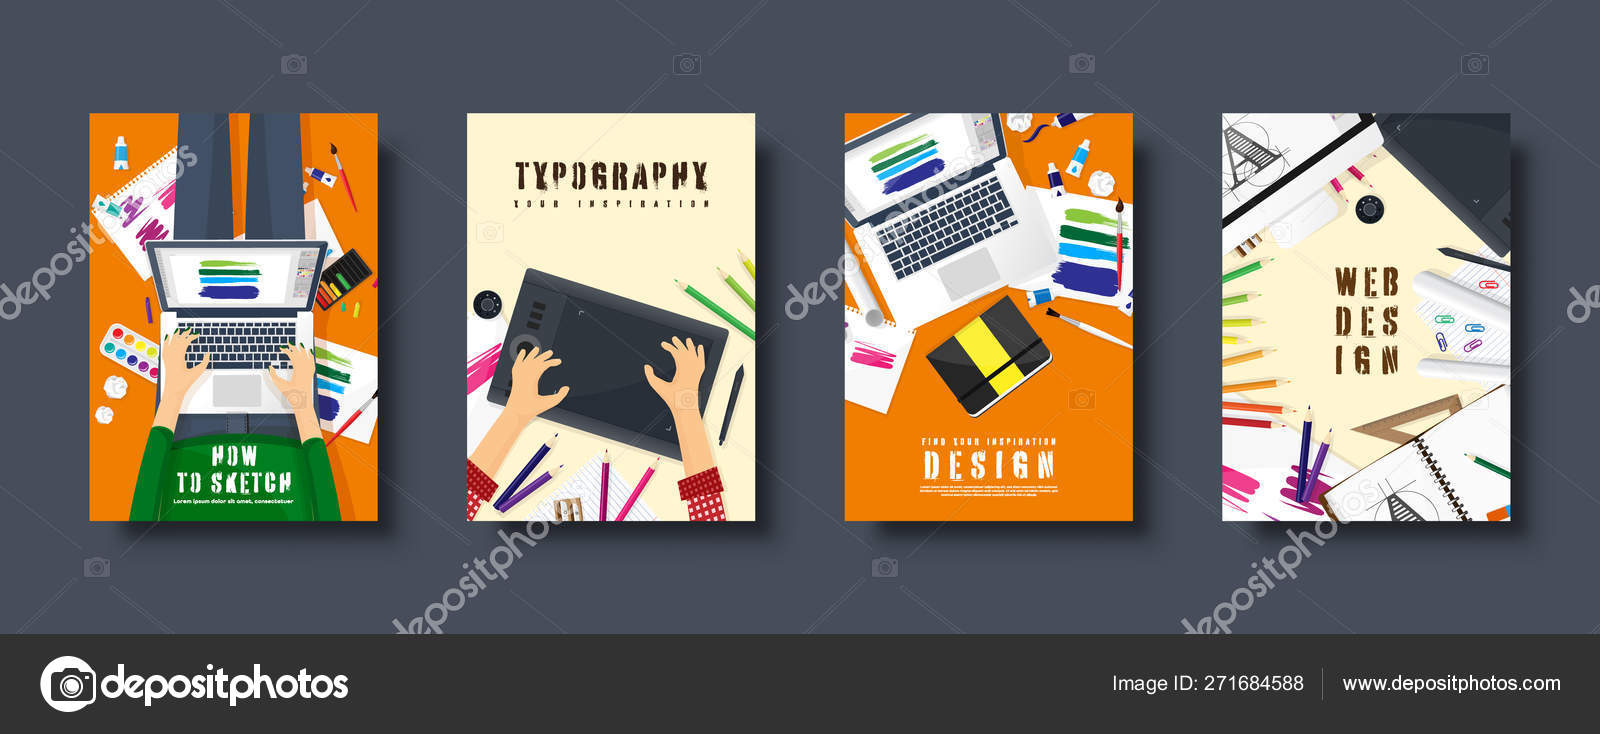 Graphic And Web Design Flat Style Covers Set Designer Workplace With Tools User Interface Design Ui Digital Drawing Online Tutorial Vector Illustration Stock Vector C Floral Set 271684588